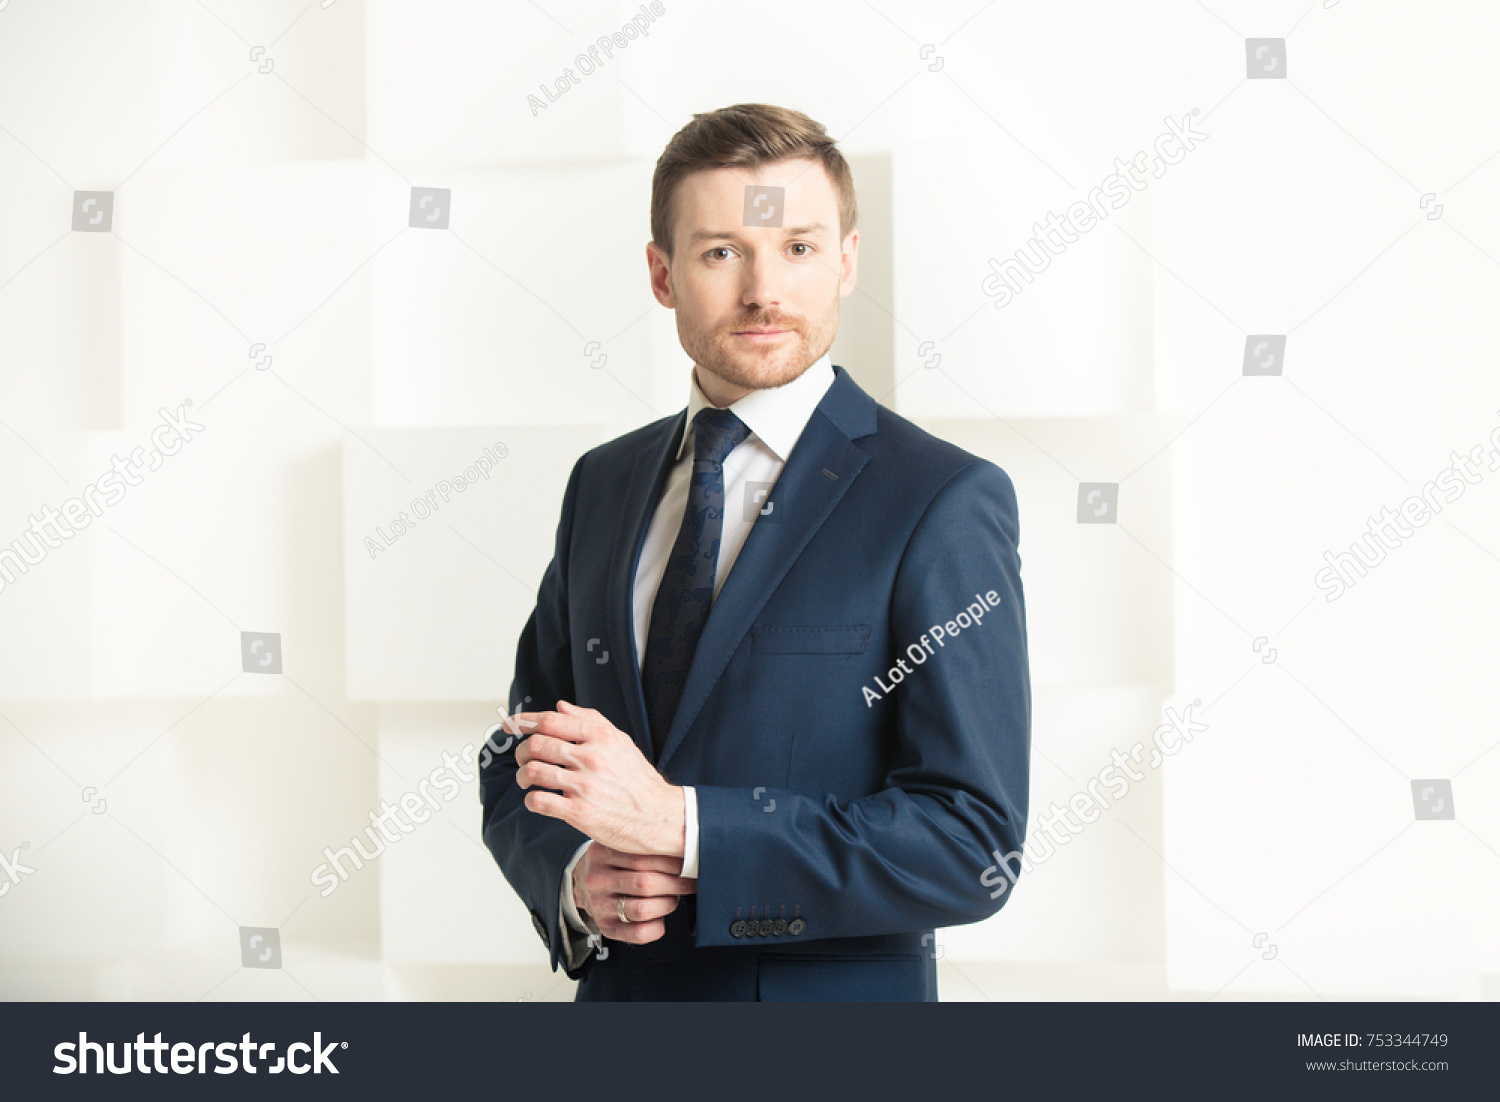 Portrait Man Black Suit Groom Businessman Stock Photo 753344749 ...